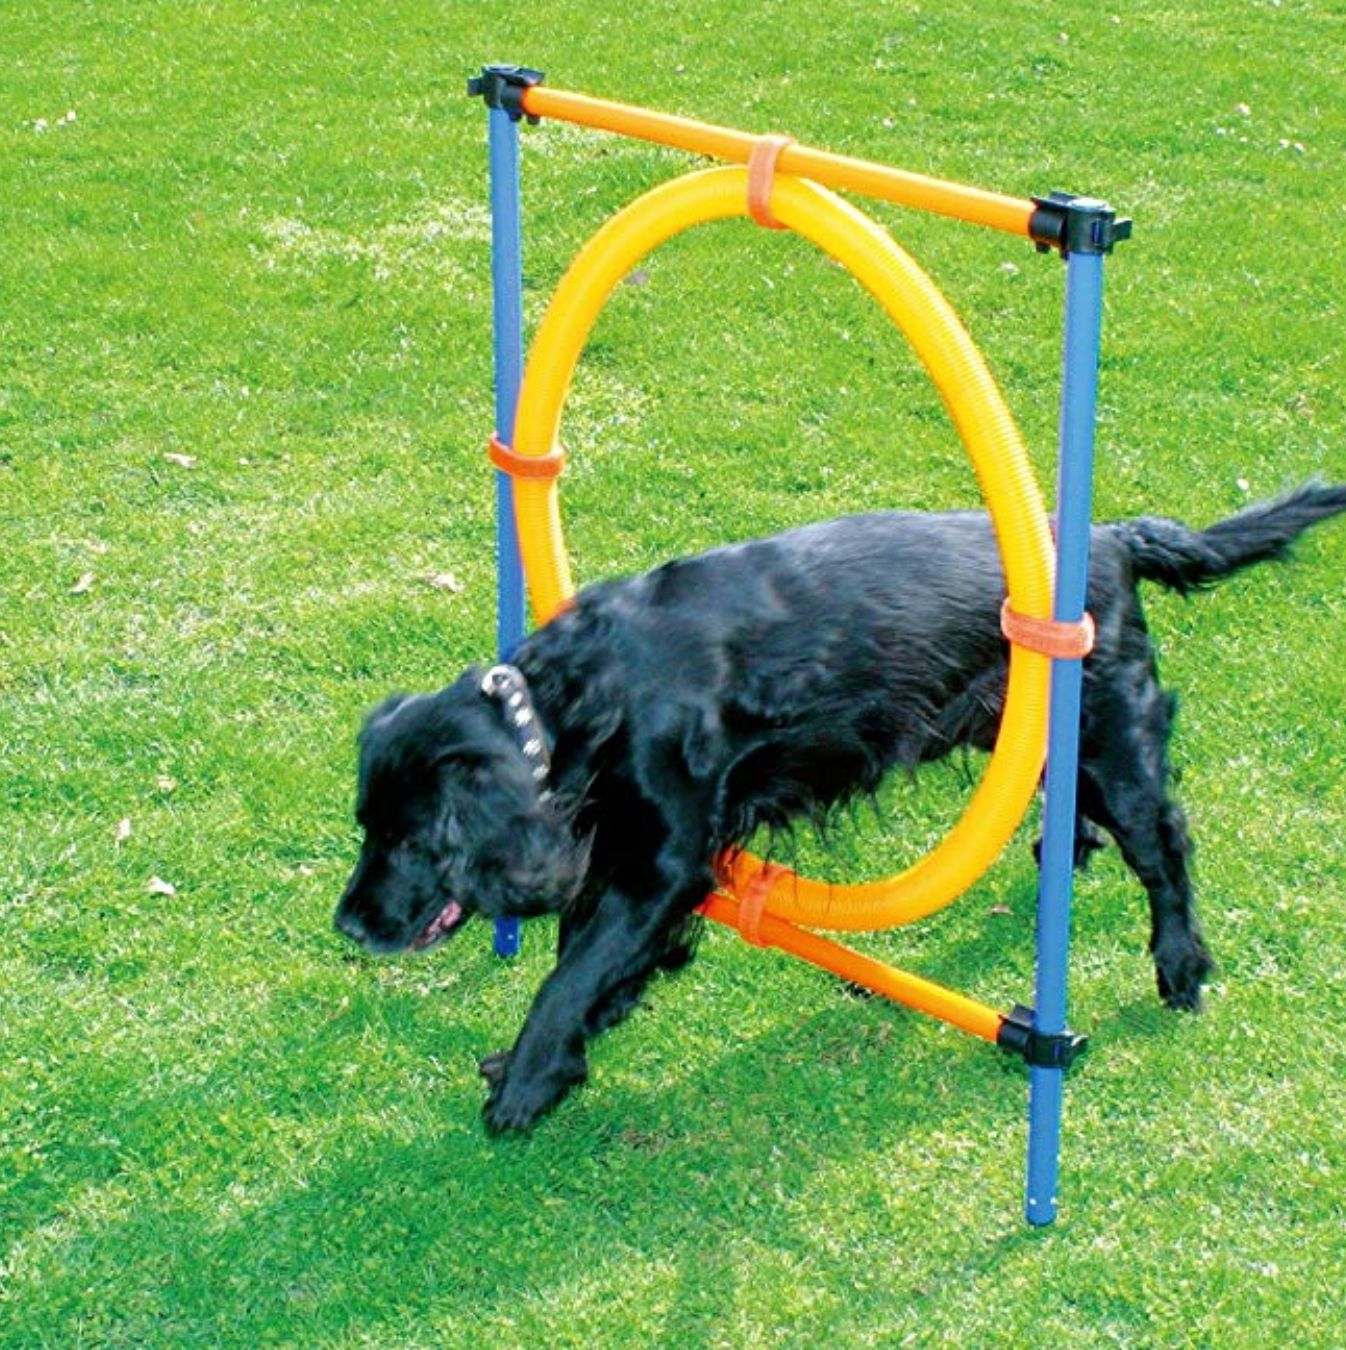 Looking For A Fun Dog Toy Grab Some Agility Stuff For The Yard